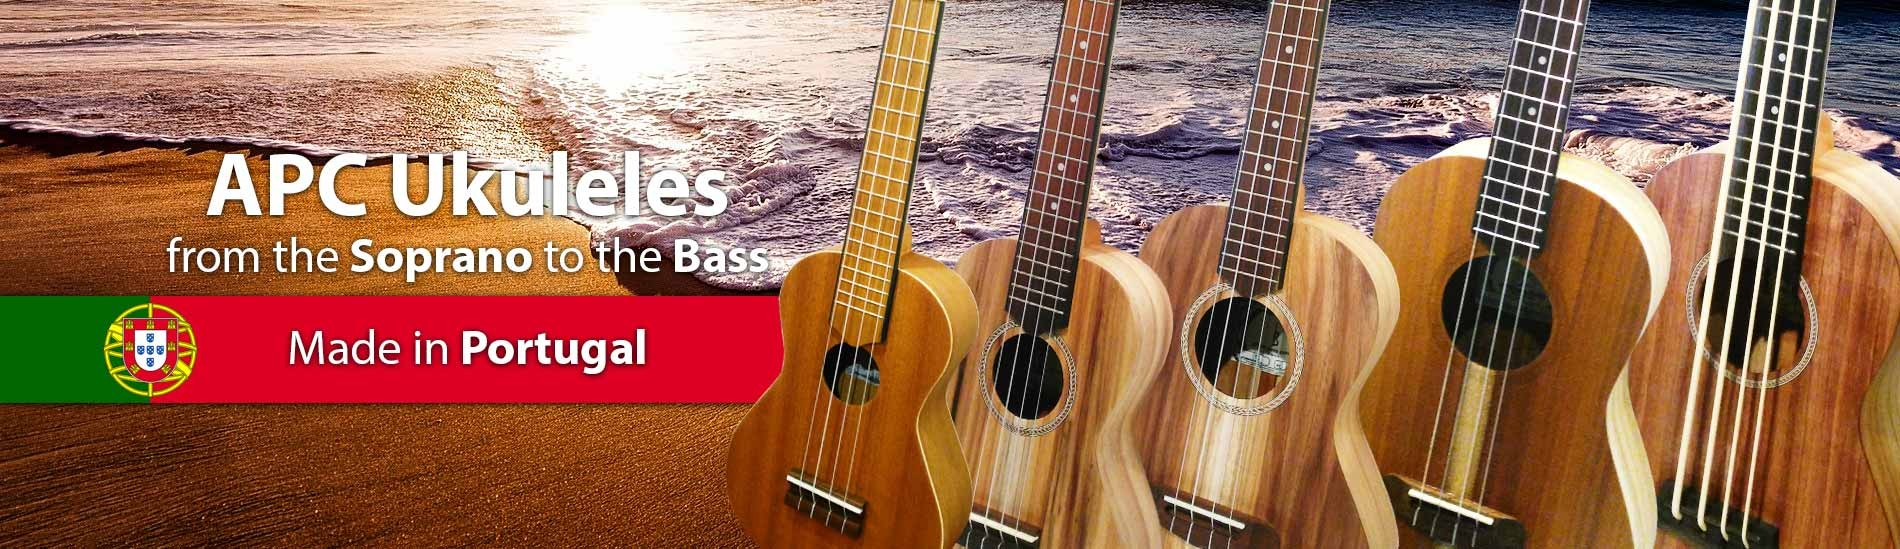 APC Ukuleles - From the Soprano to the Bass! - Made in Portugal